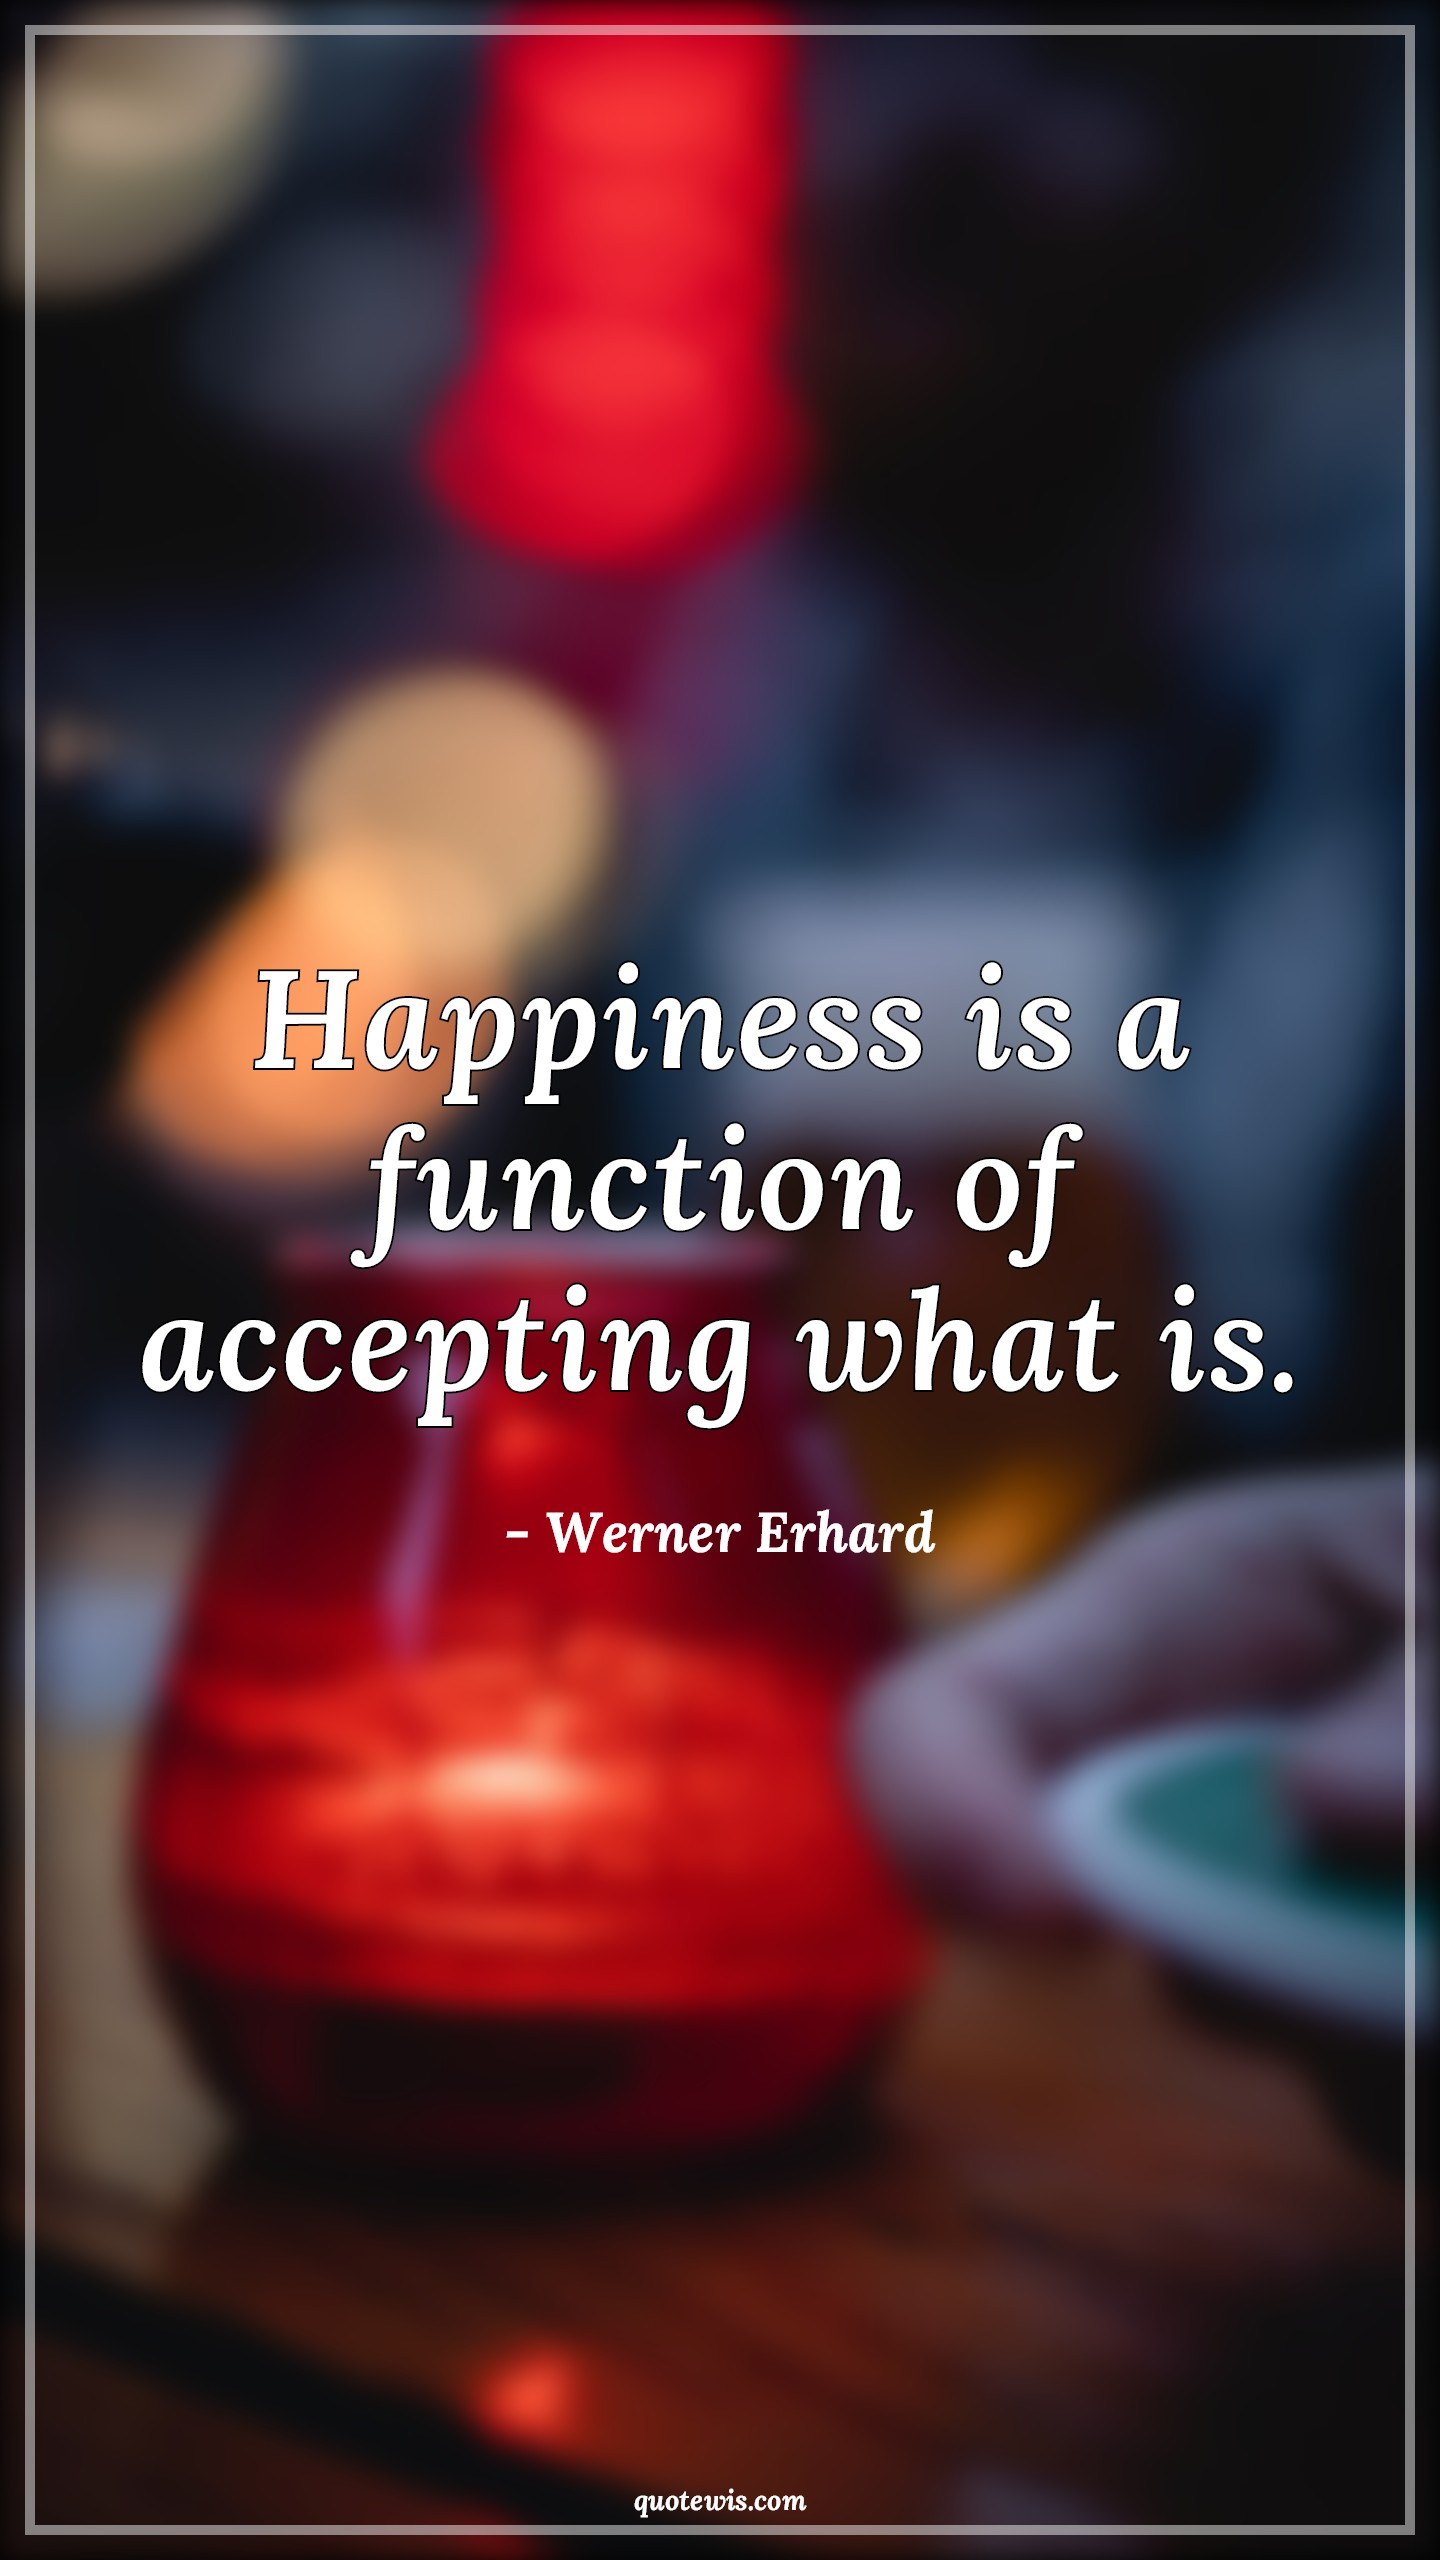 Happiness is a function of accepting what is.